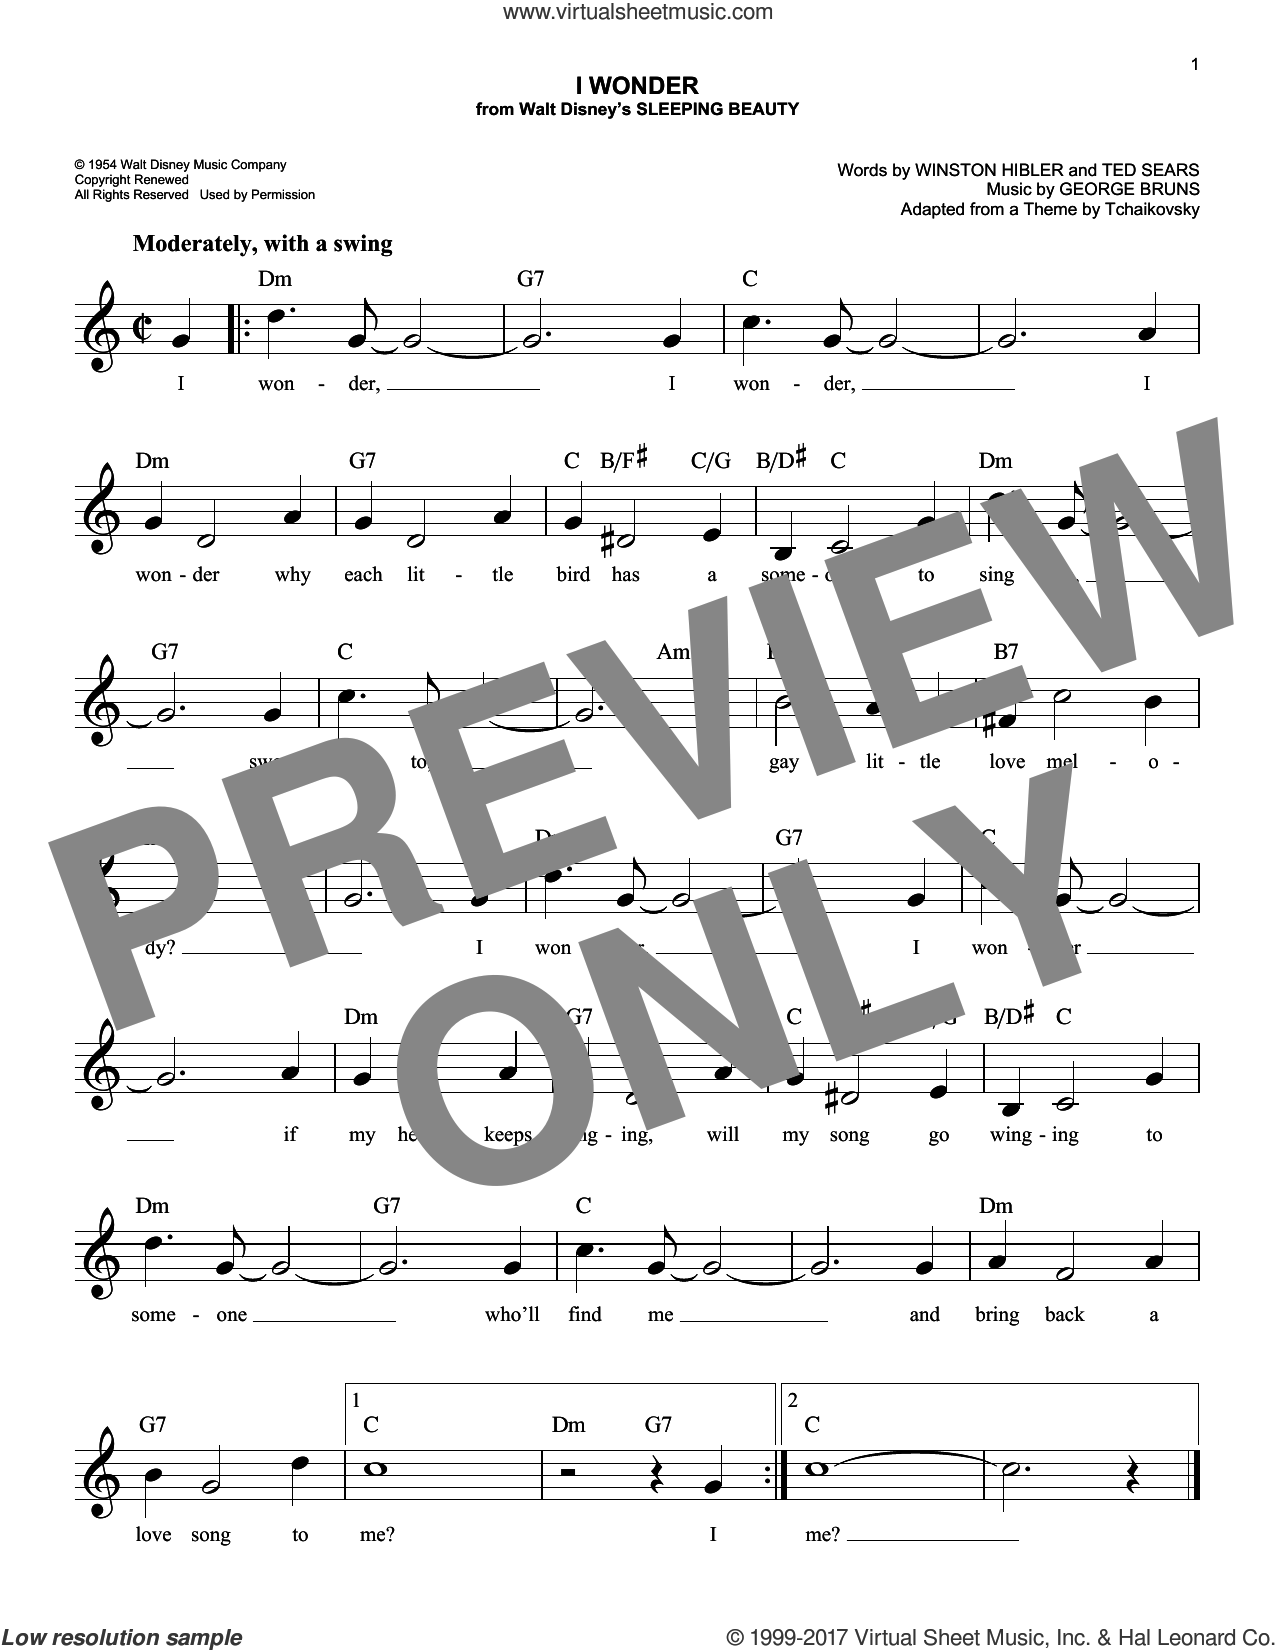 I Wonder sheet music for voice and other instruments (fake book) by George Bruns, Ted Sears and Winston Hibler, intermediate skill level